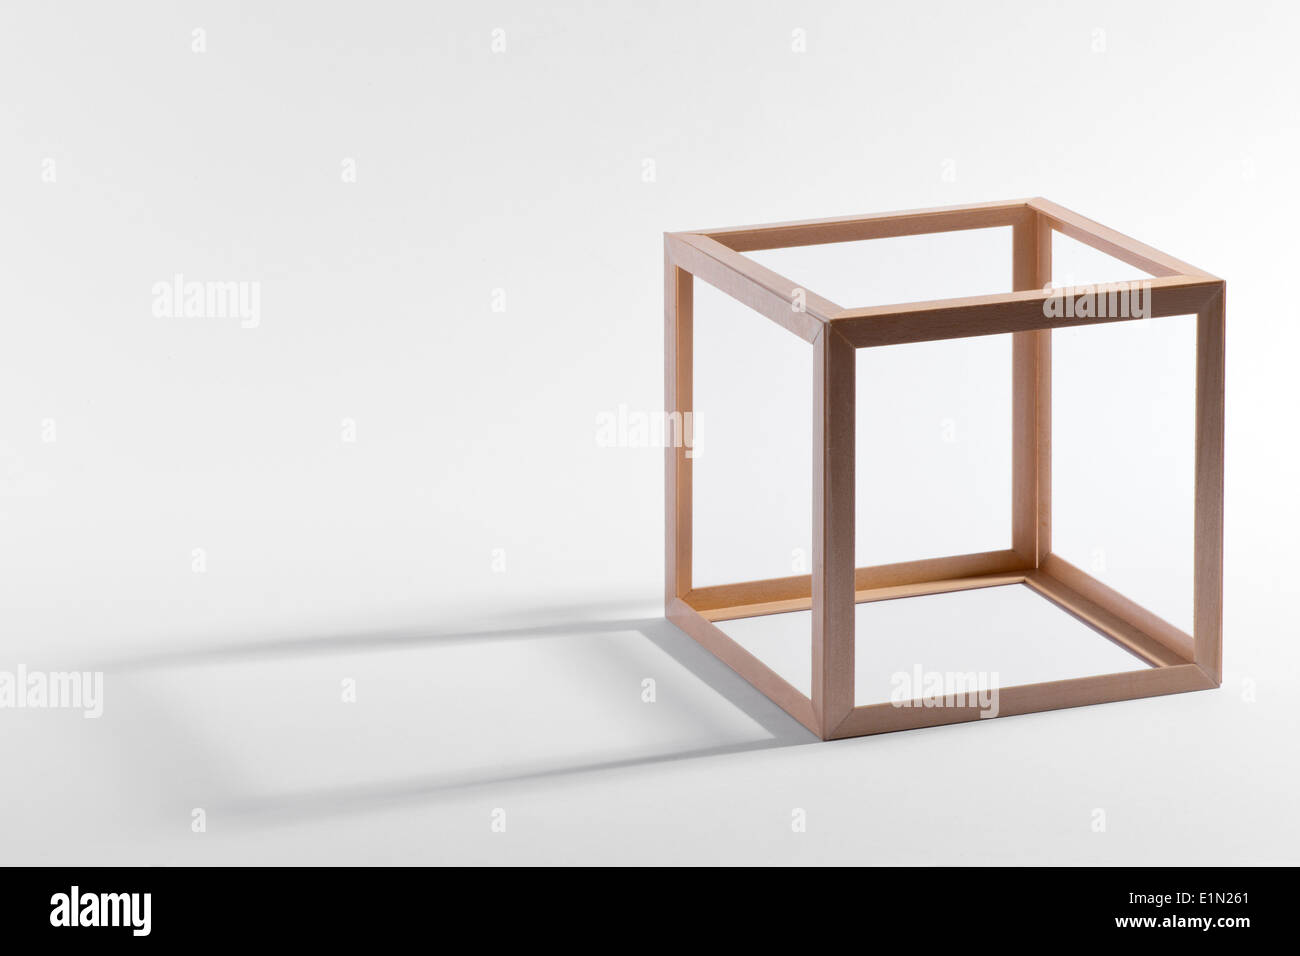 Empty wooden cubic frame - Stock Image